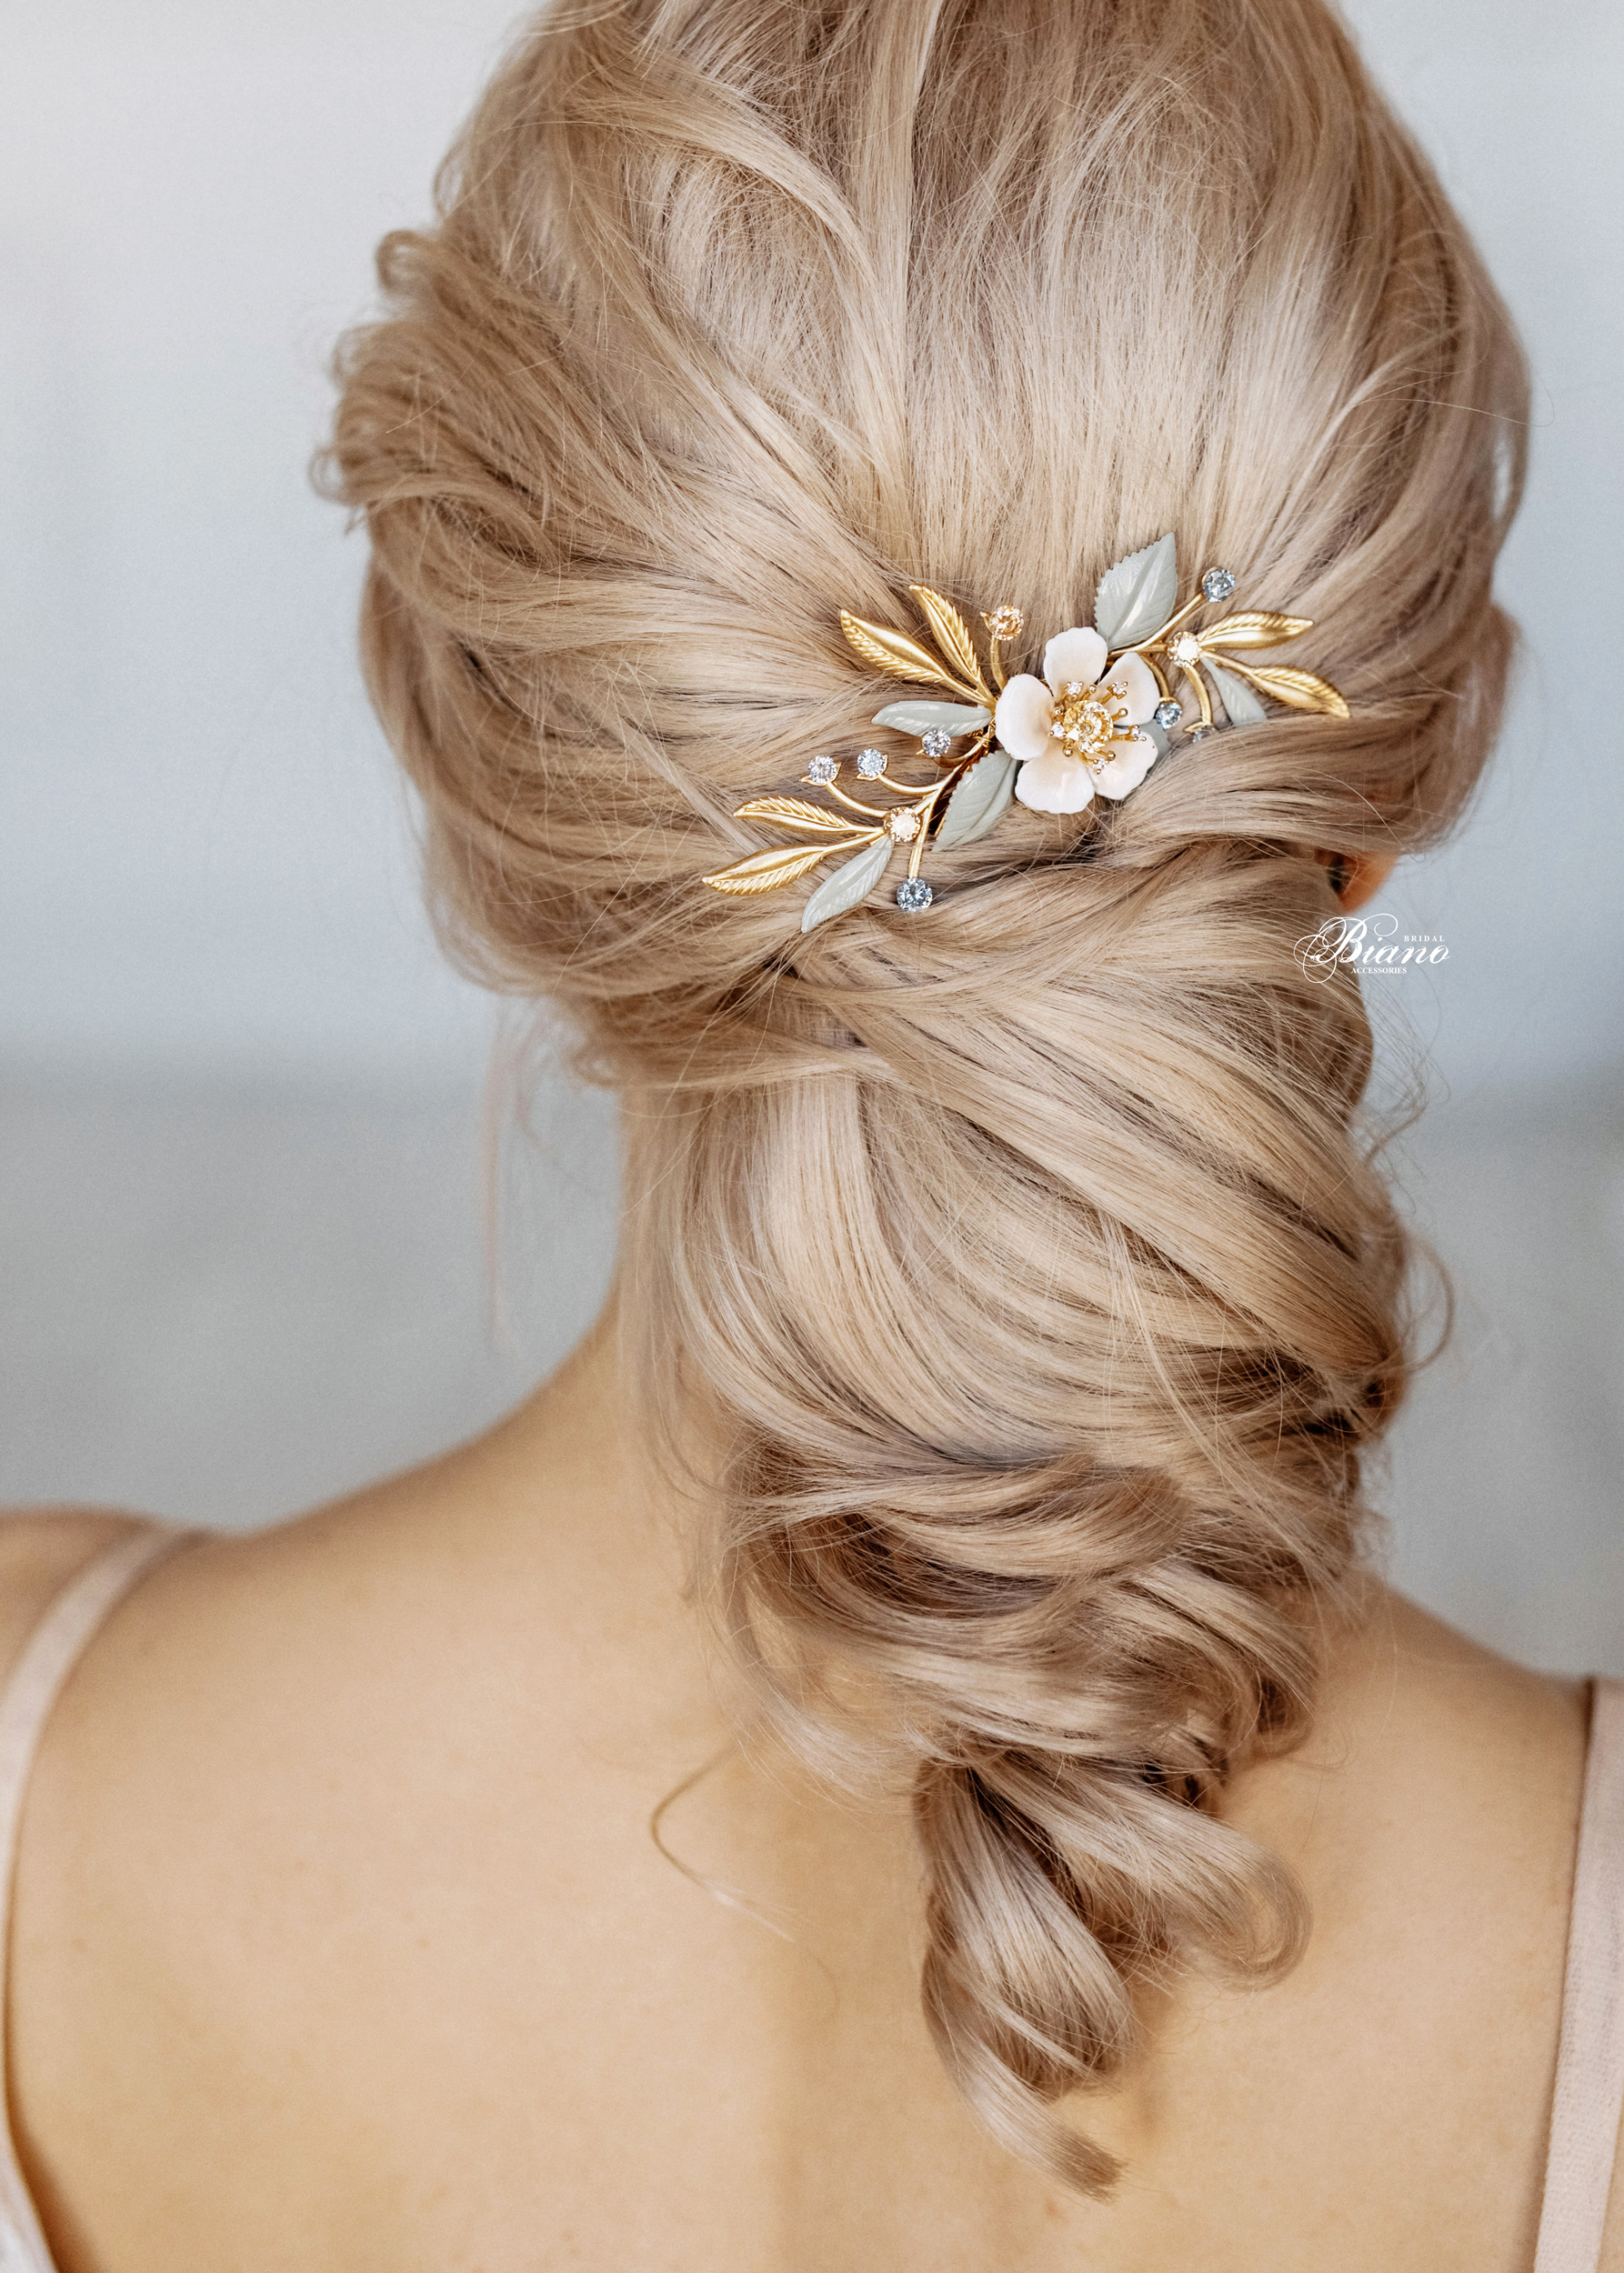 Find your perfect Hair Comb for Wedding - Handmade in SwitzerlandUnique DesignPossibility to Rush OrdersFree Shipping WorldwideCustomisable OrdersFast response on your questions